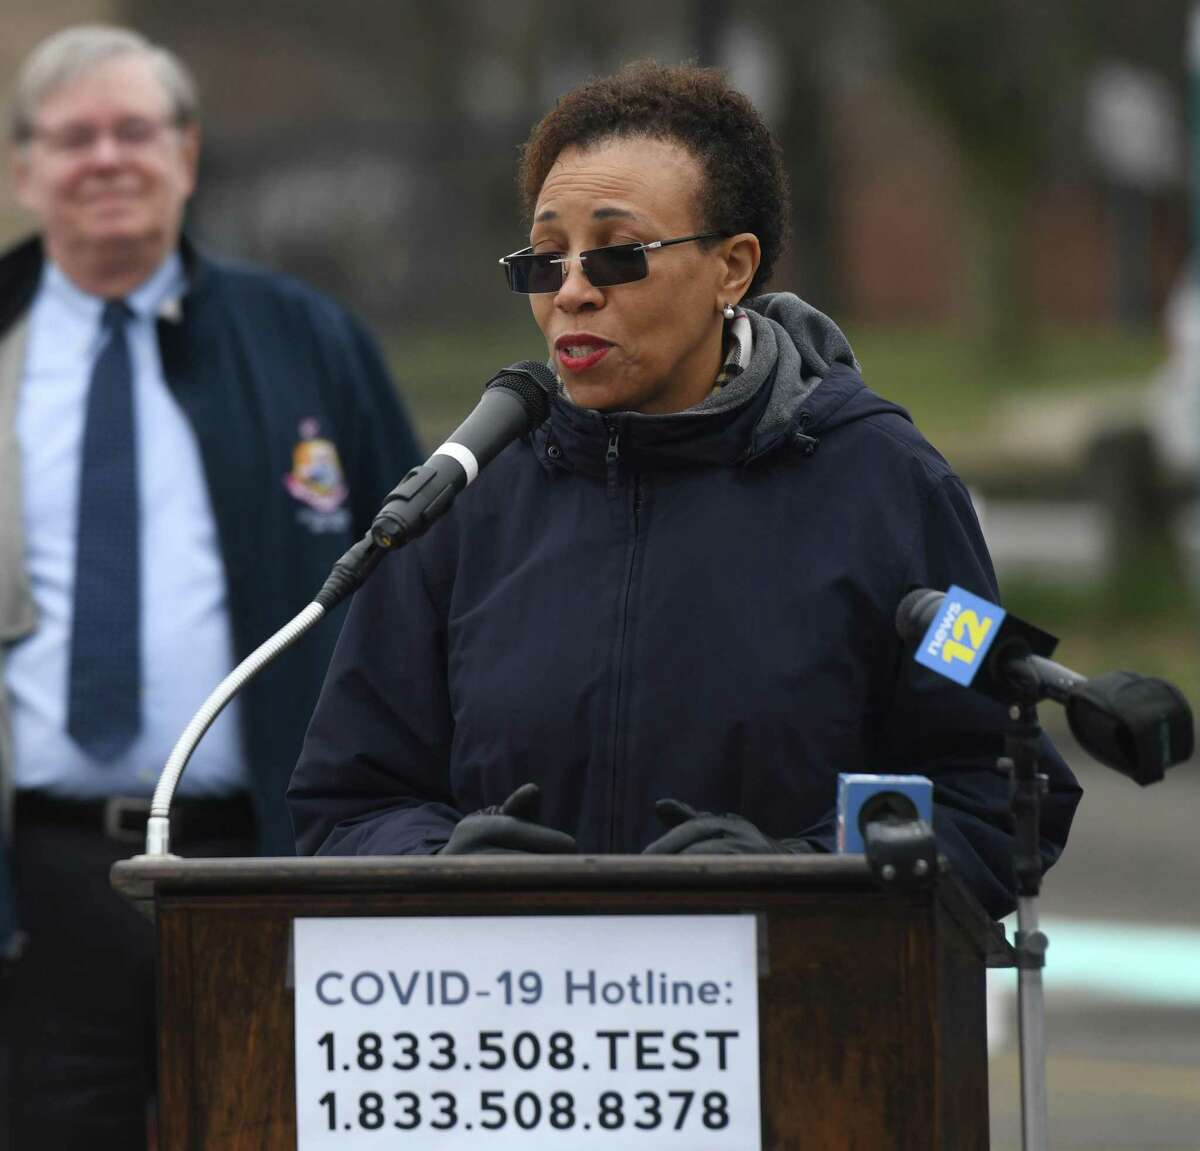 City of Stamford irector of Health Dr. Jennifer Calder speaks about the coronavirus situation at Westhill High School in Stamford, Conn. Monday, March 30, 2020.